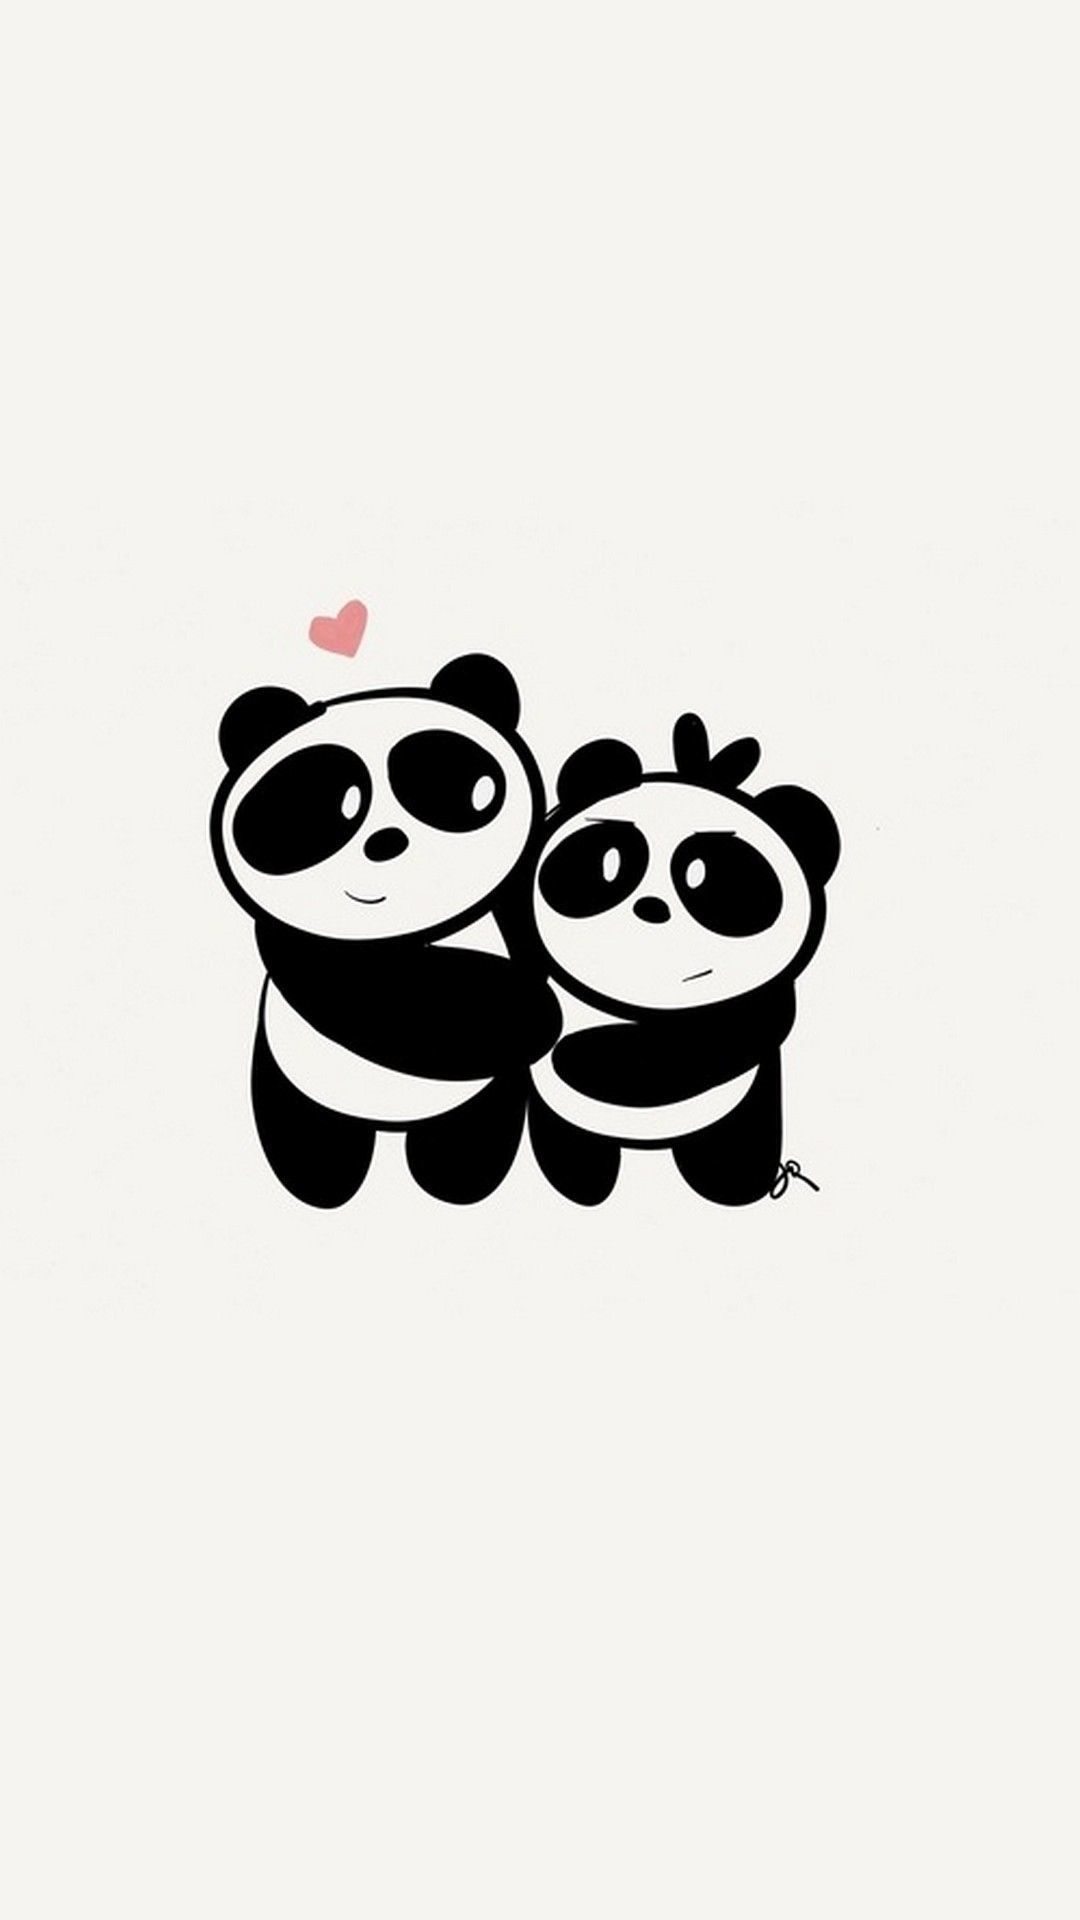 Love Black And White Wallpaper Download Cute Panda Wallpaper Panda Wallpapers Wallpaper Iphone Cute